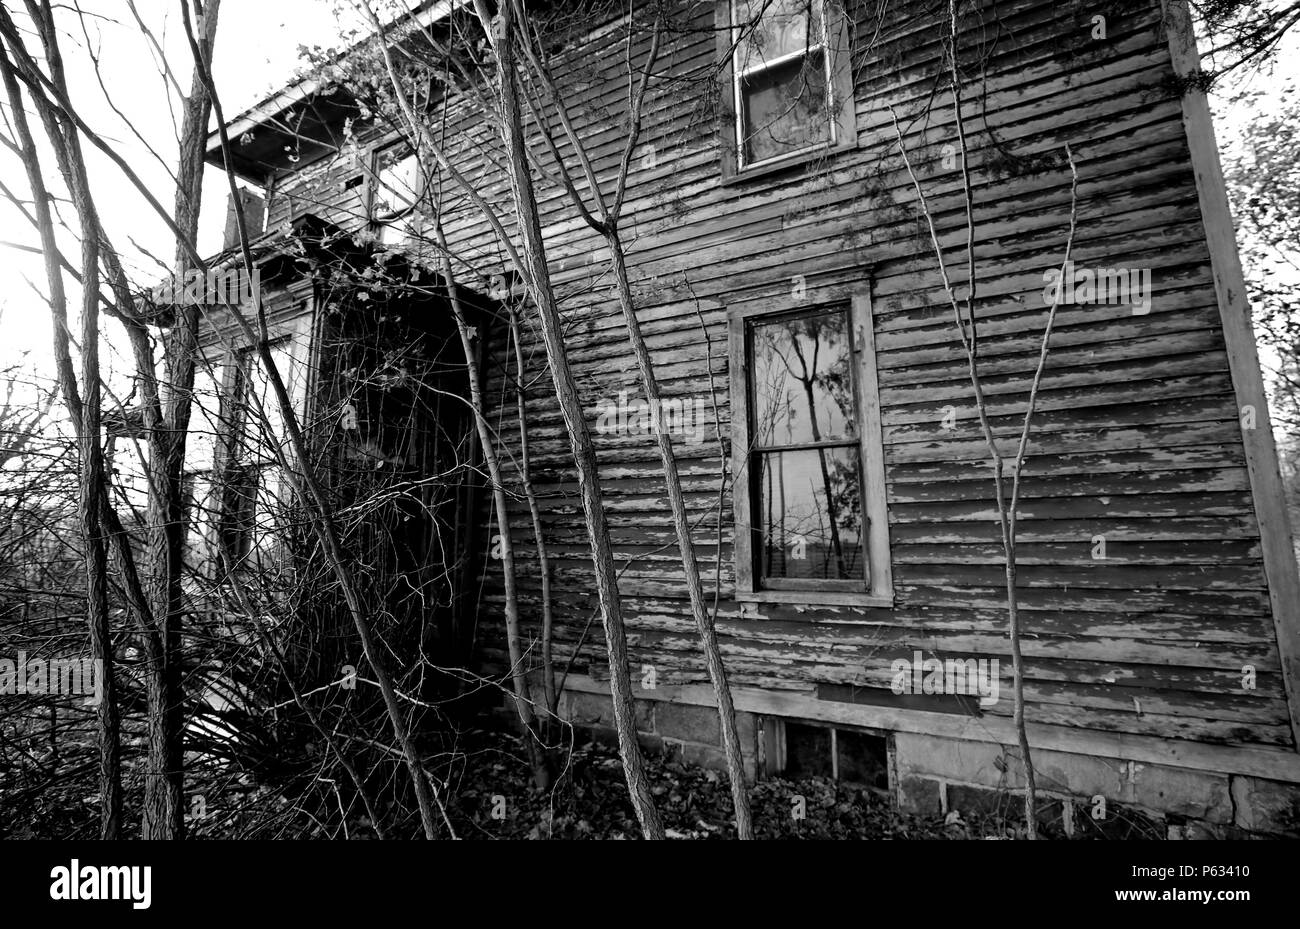 Old abandoned farm house in Lenawee County Michigan. Taken in the winter. has has been known to be haunted. - Stock Image